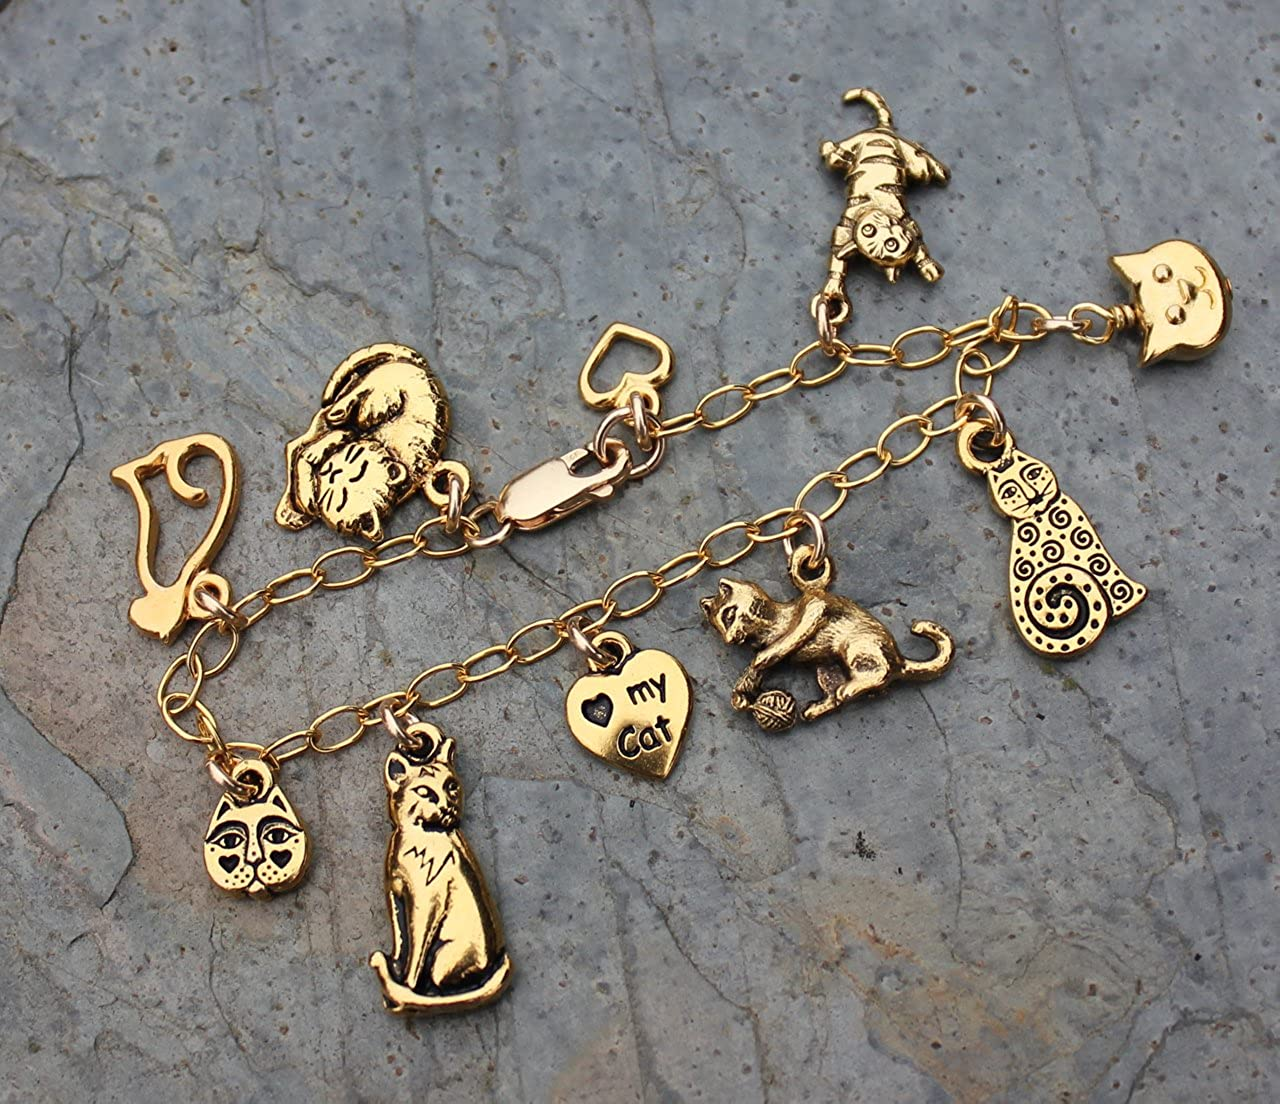 Sizes XS-XL Night Owl Jewelry Love My Cat Charm Bracelet Gold Plated Kitty Themed Charms with 14k Gold Filled Chain